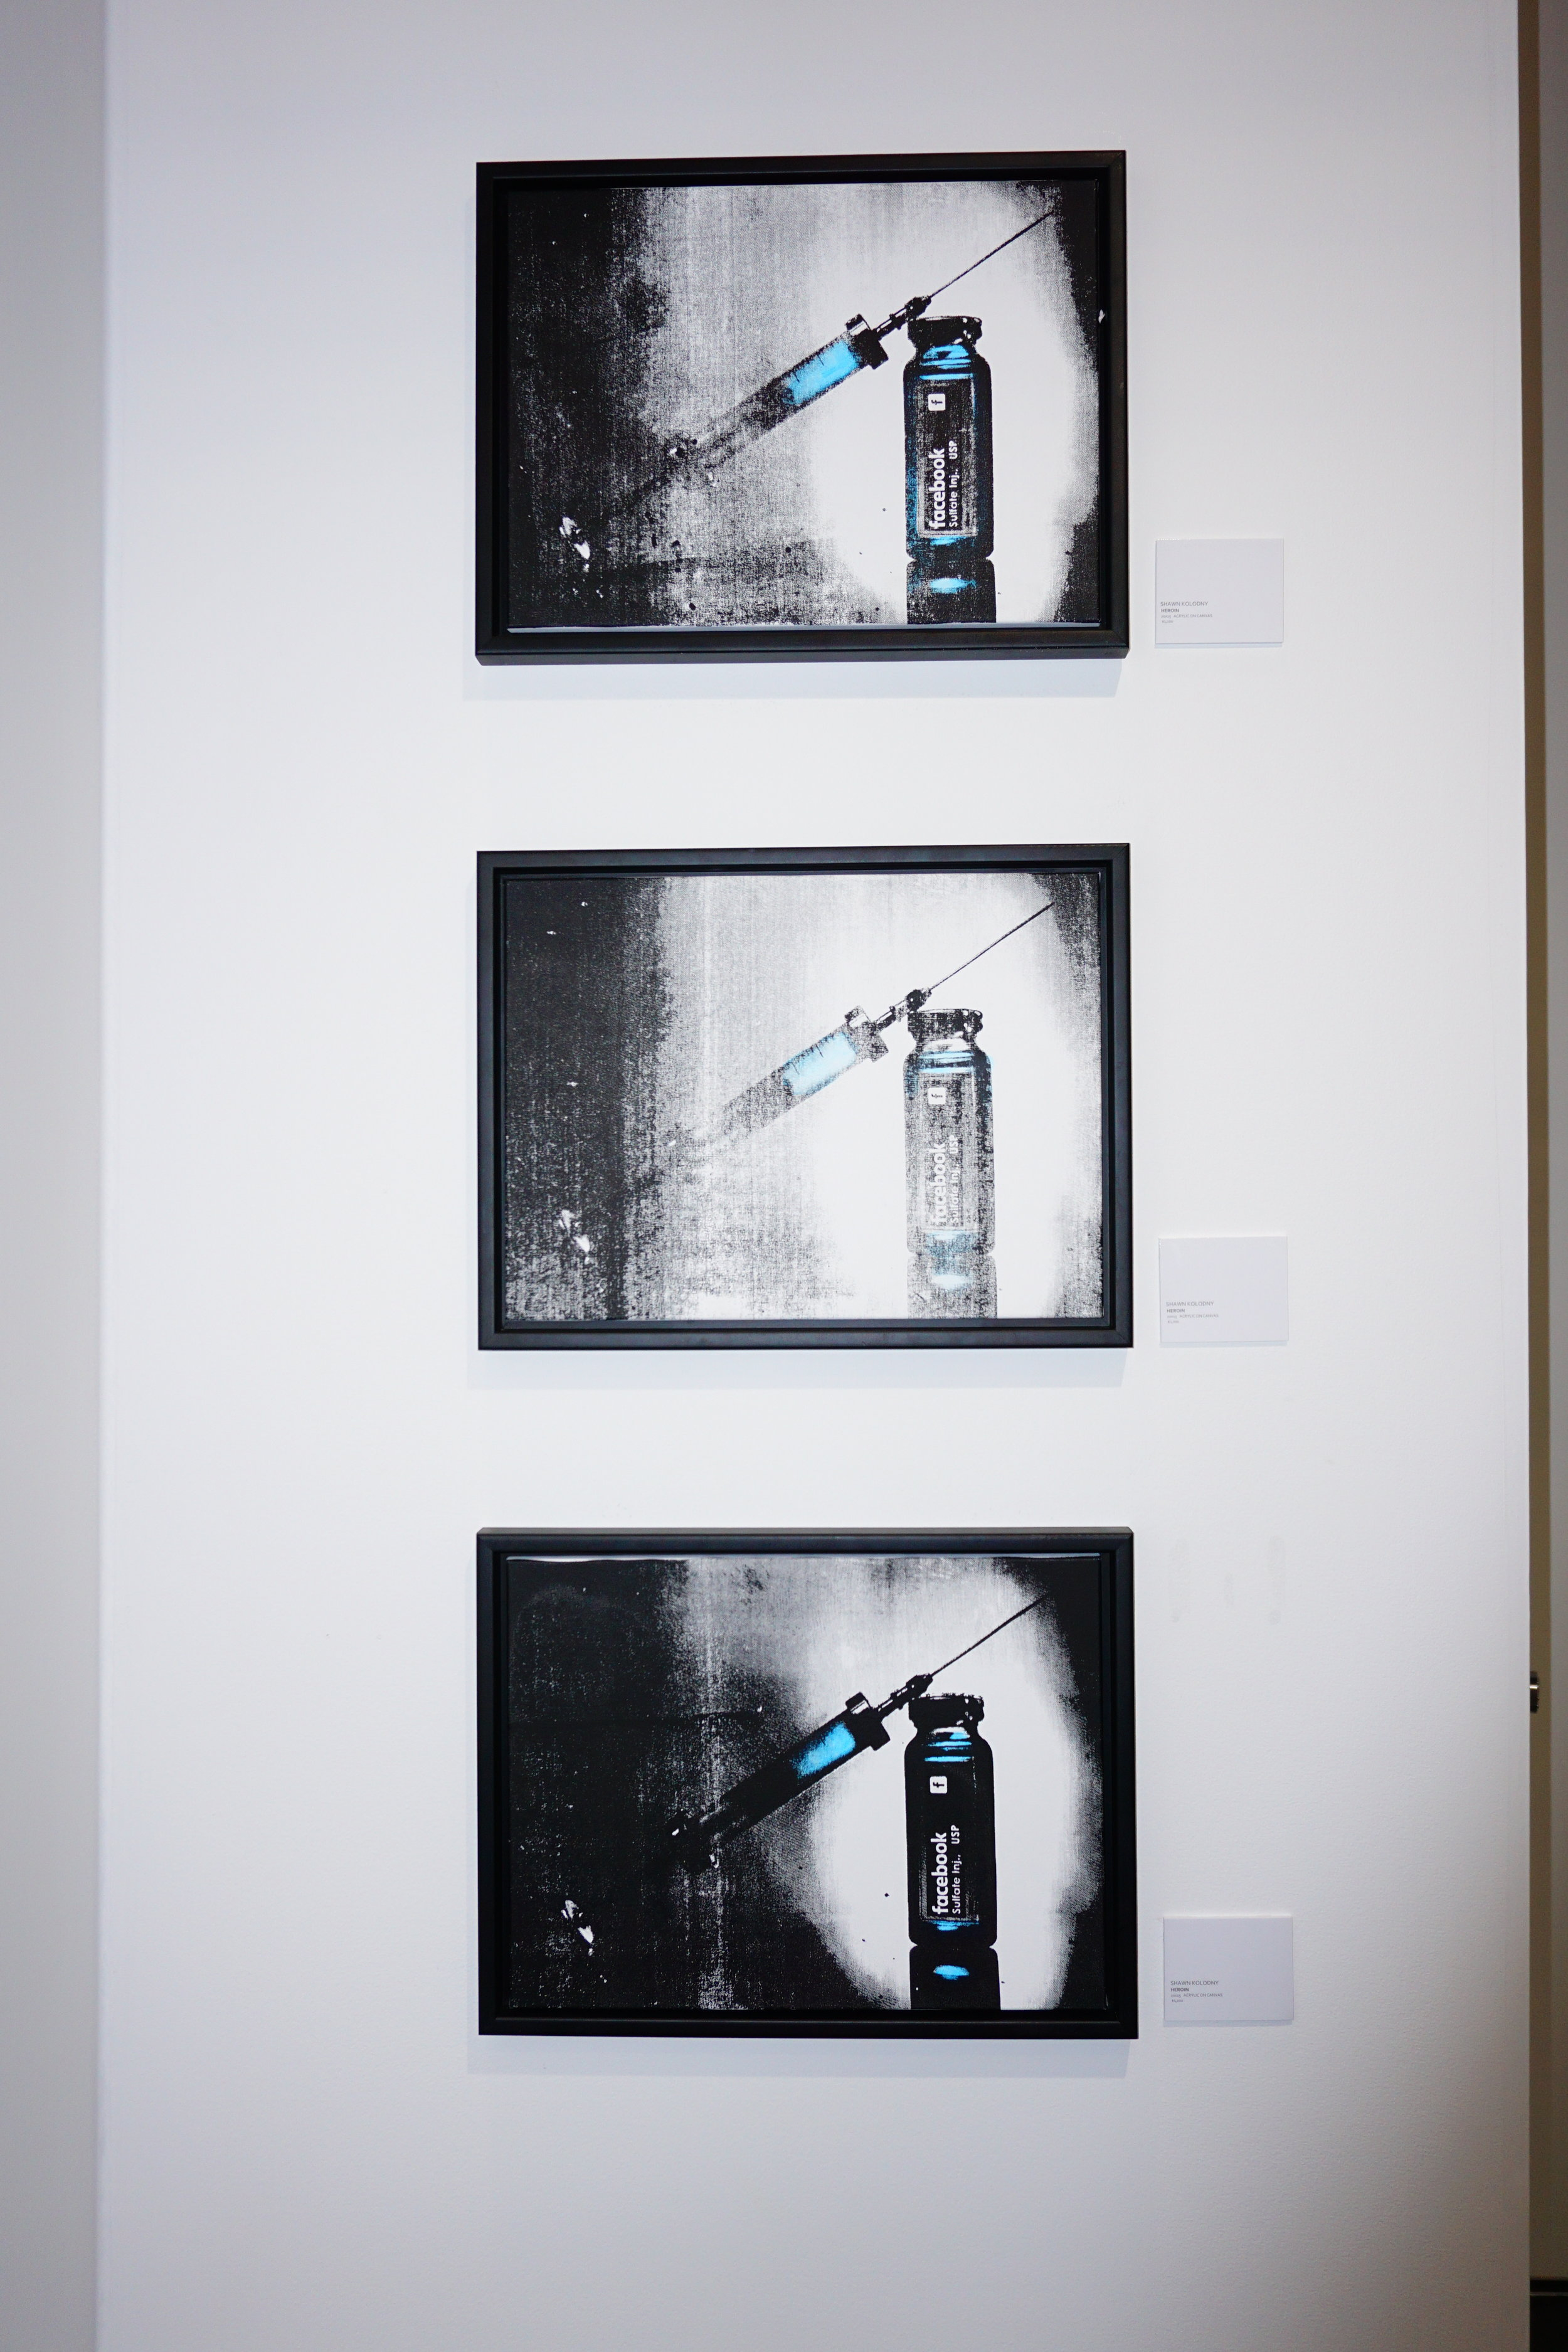 Addicted to Social, Addiction Collection - Artwork by Shawn Kolodny   Price Sheet